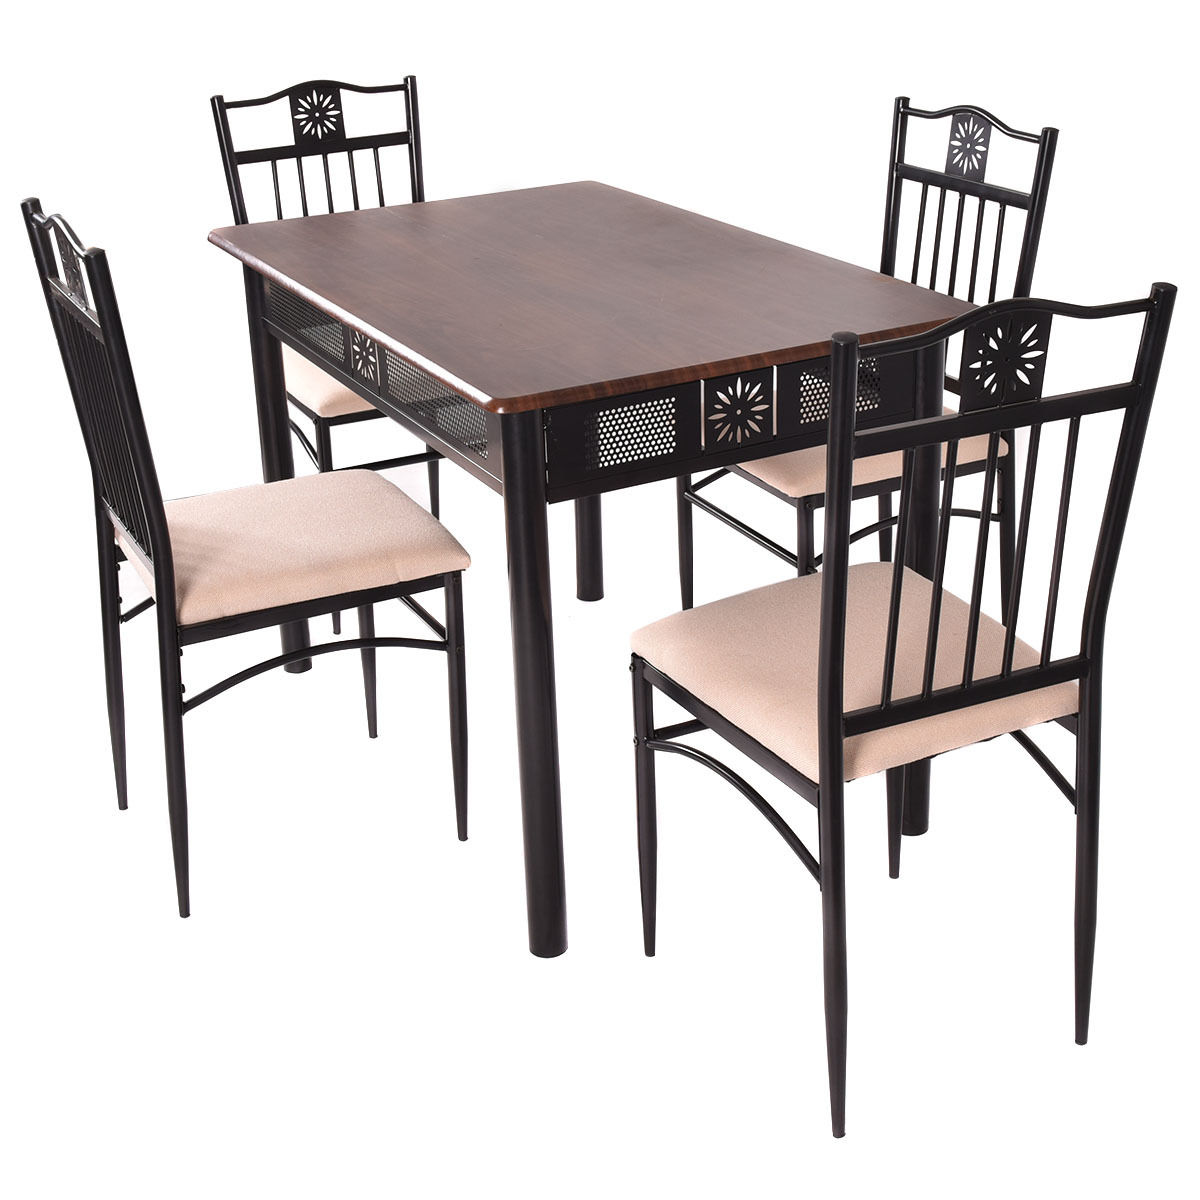 Costway 5 Piece Dining Set Wood Metal Table And 4 Chairs Kitchen Breakfast  Furniture